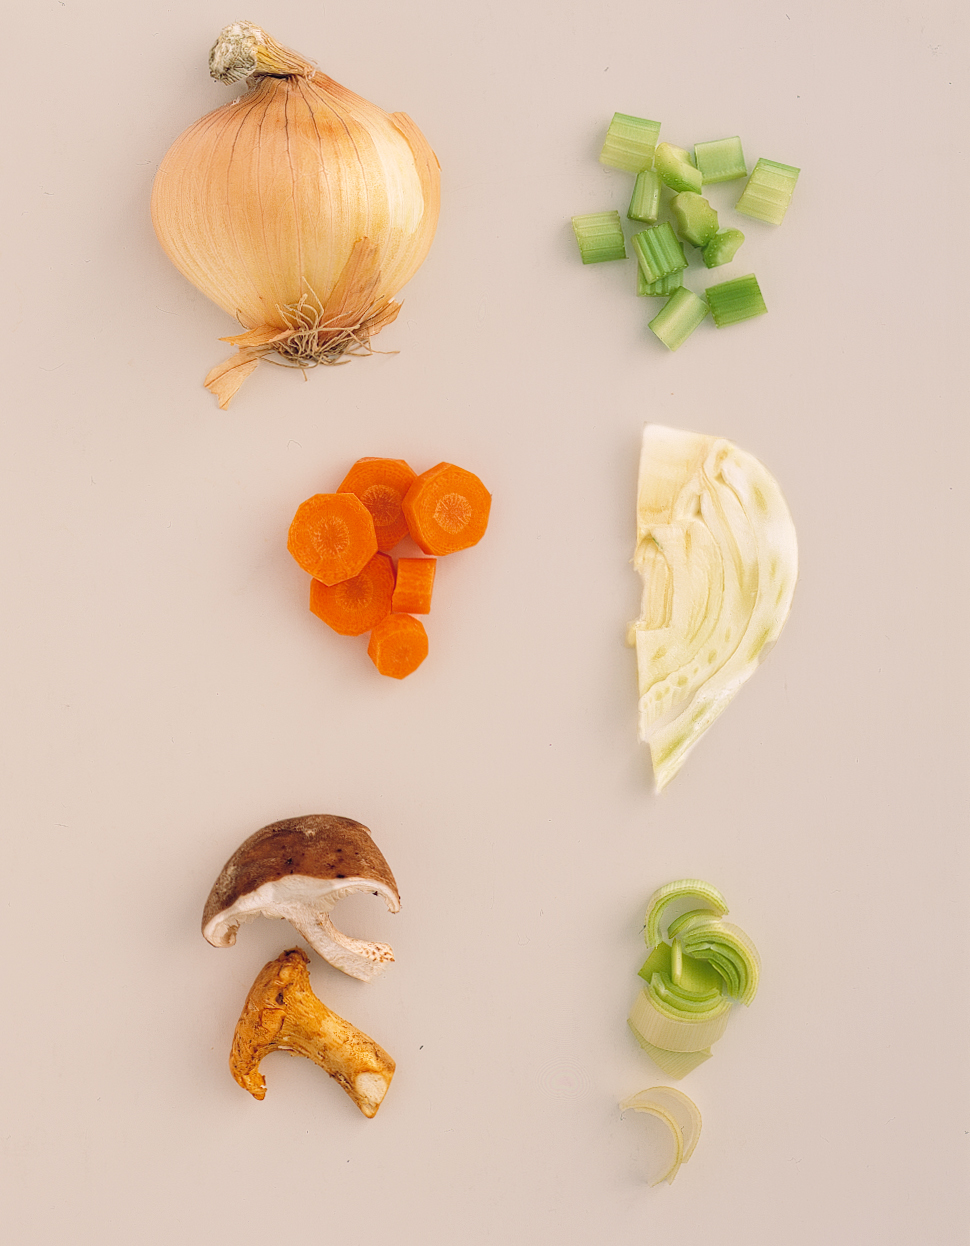 vegetables for stuffing laid out